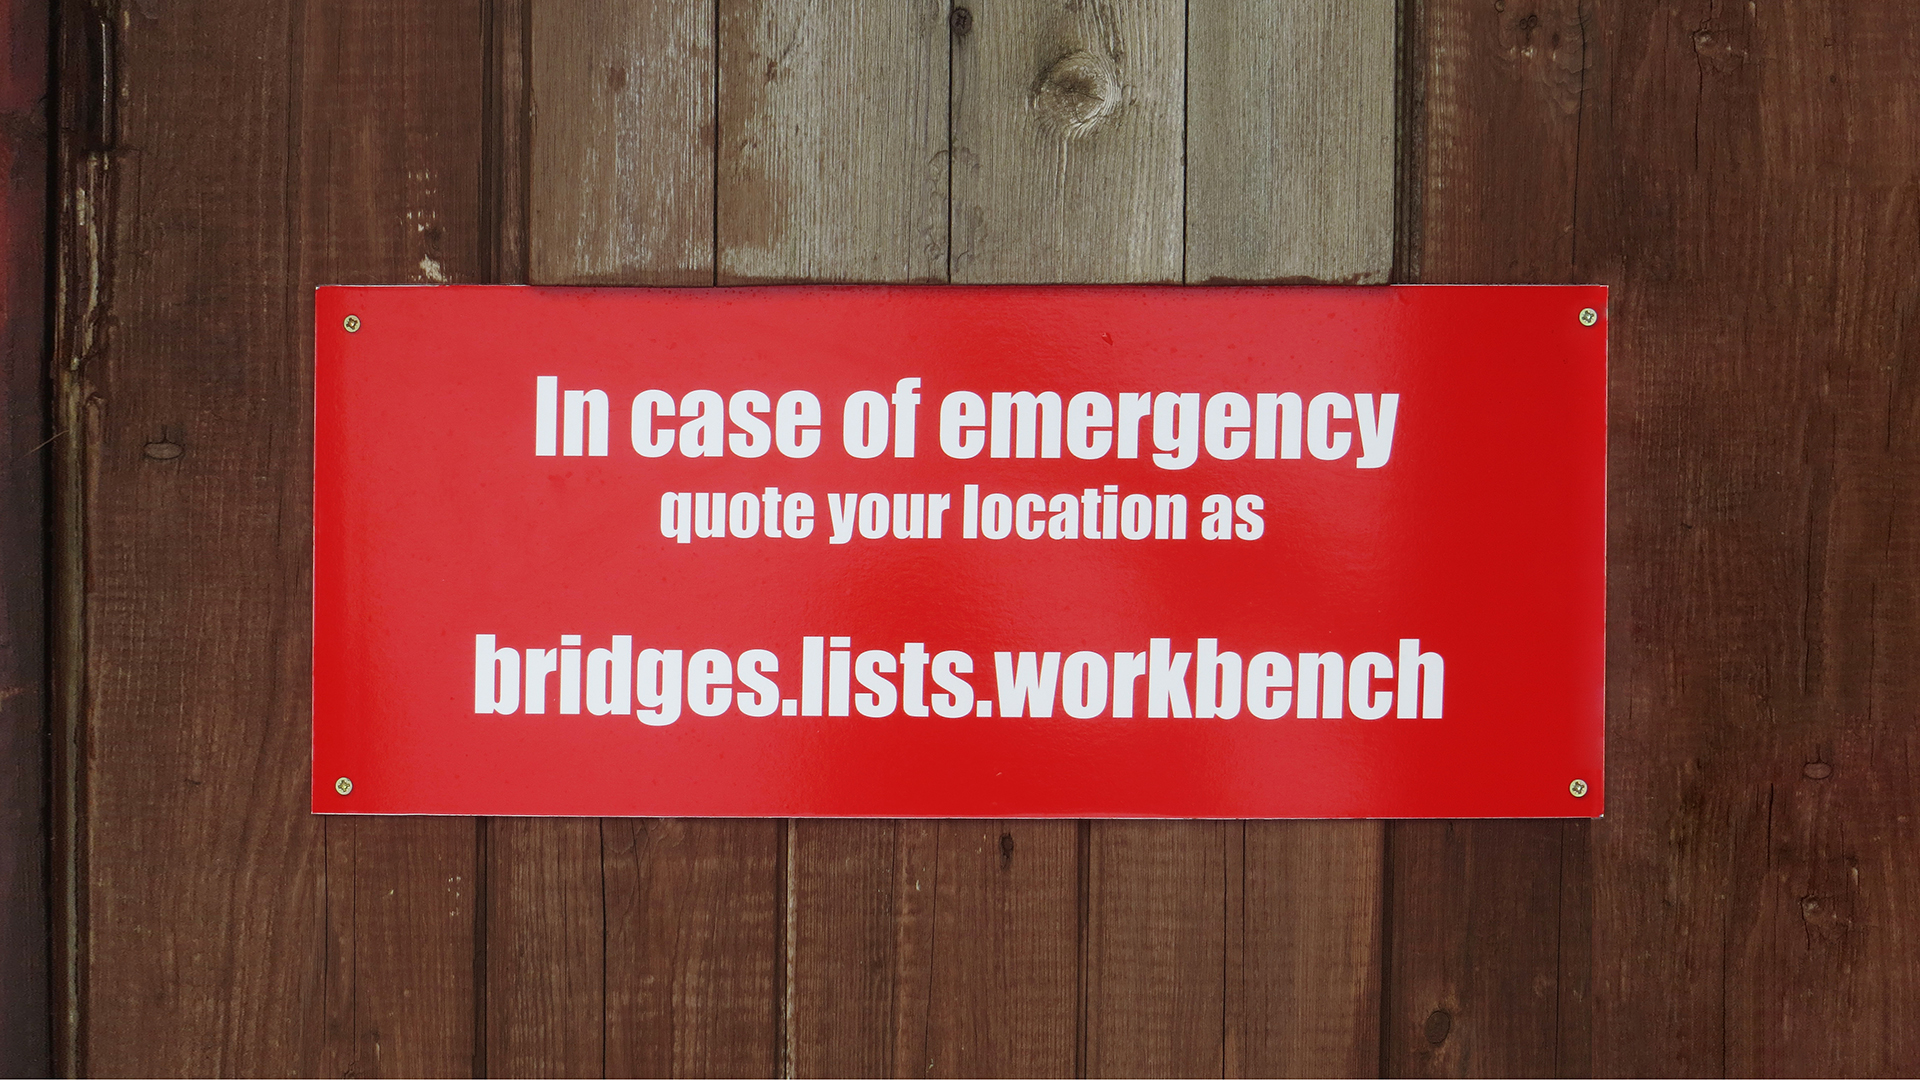 In case of emergency sign with 3 word address attached to fence